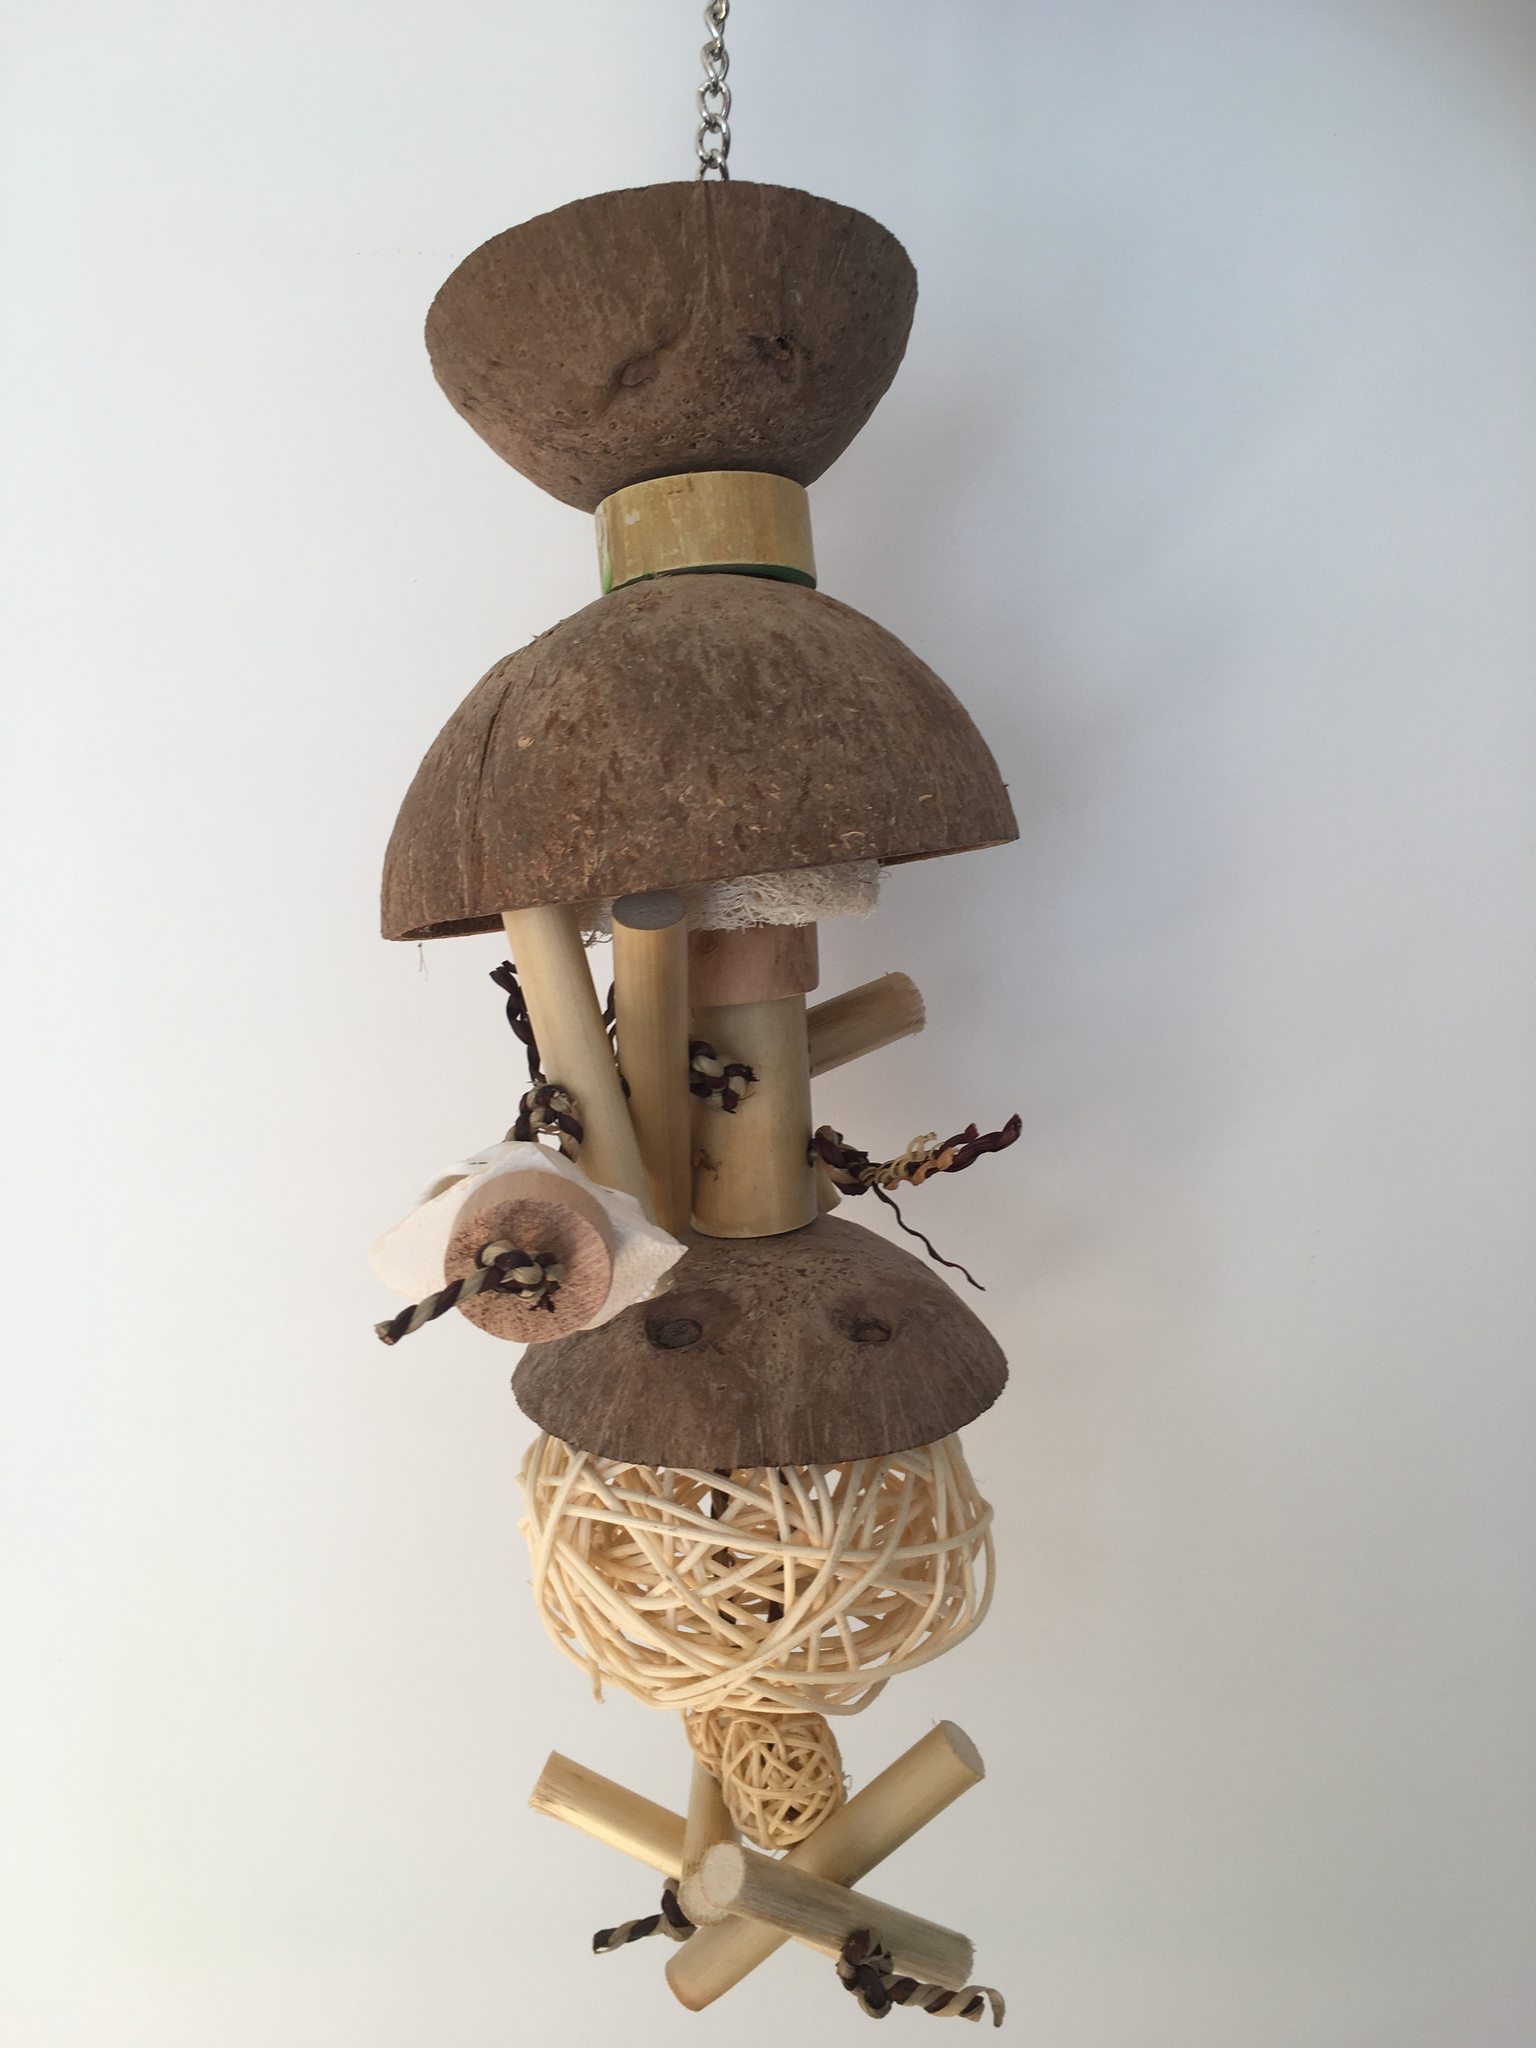 natural coconut chandelier bird toy for larger parrots, it has coconut halves, vine balls, wood, and calcium blocks